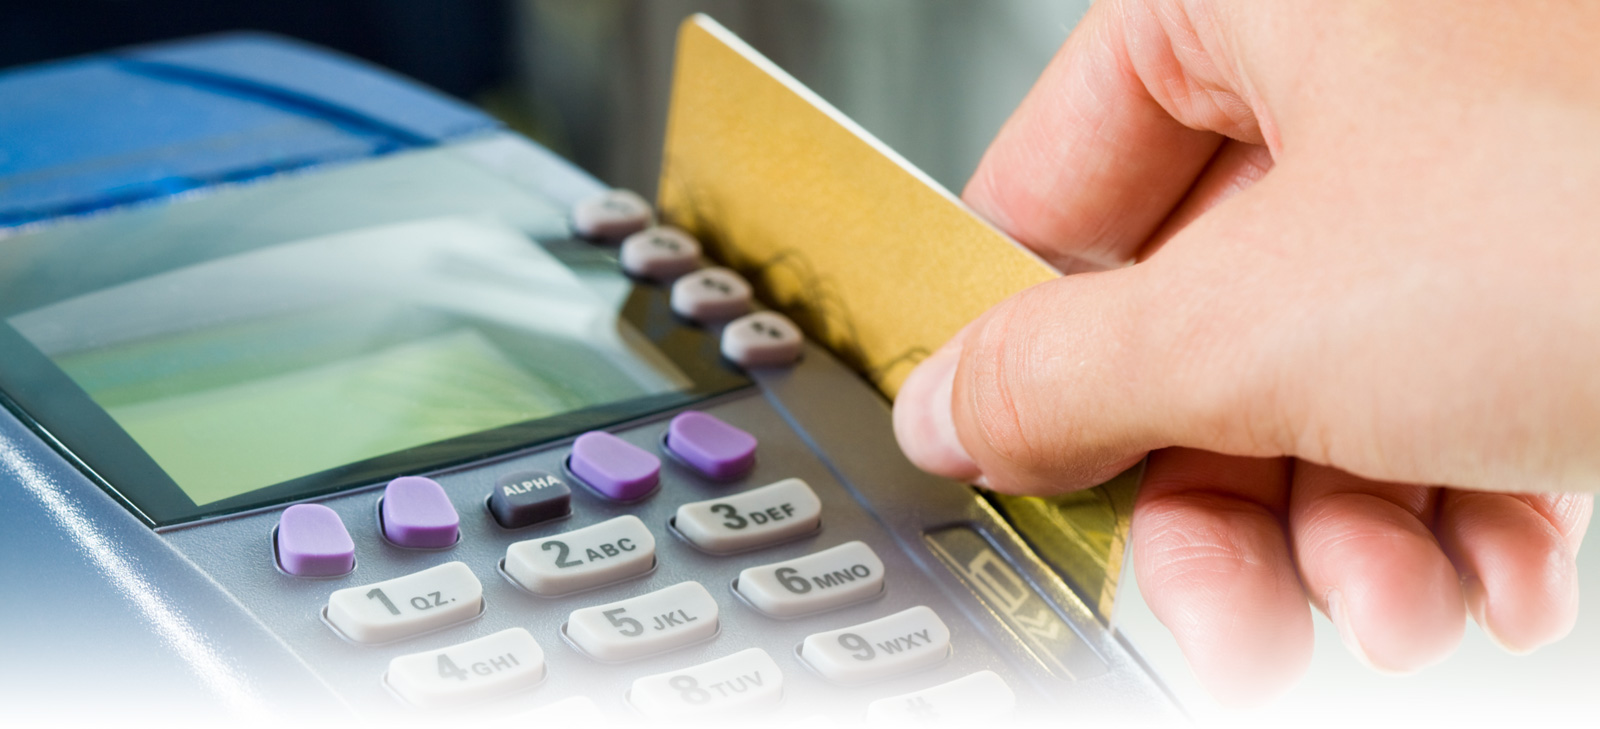 cardbiz-terminal-program-we-make-it-easy-for-you-to-accept-credit-cards-for-your-retail-business